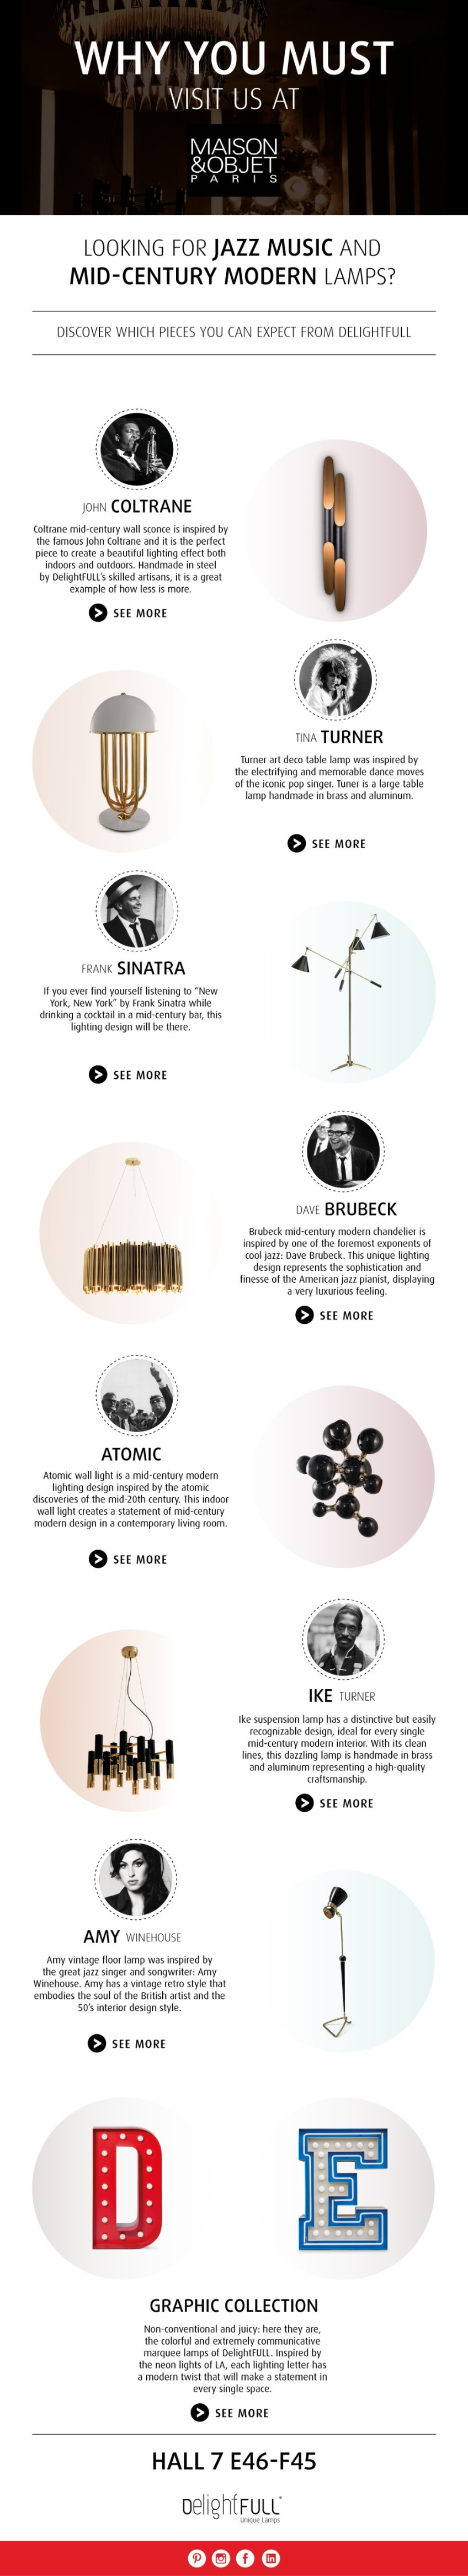 Get To Know The Best Lighting Design Brand At Maison Et Objet 2018 best lighting design brand Get To Know The Best Lighting Design Brand At Maison Et Objet 2018 Get To Know The Best Lighting Design Brand At Maison Et Objet 2018 7